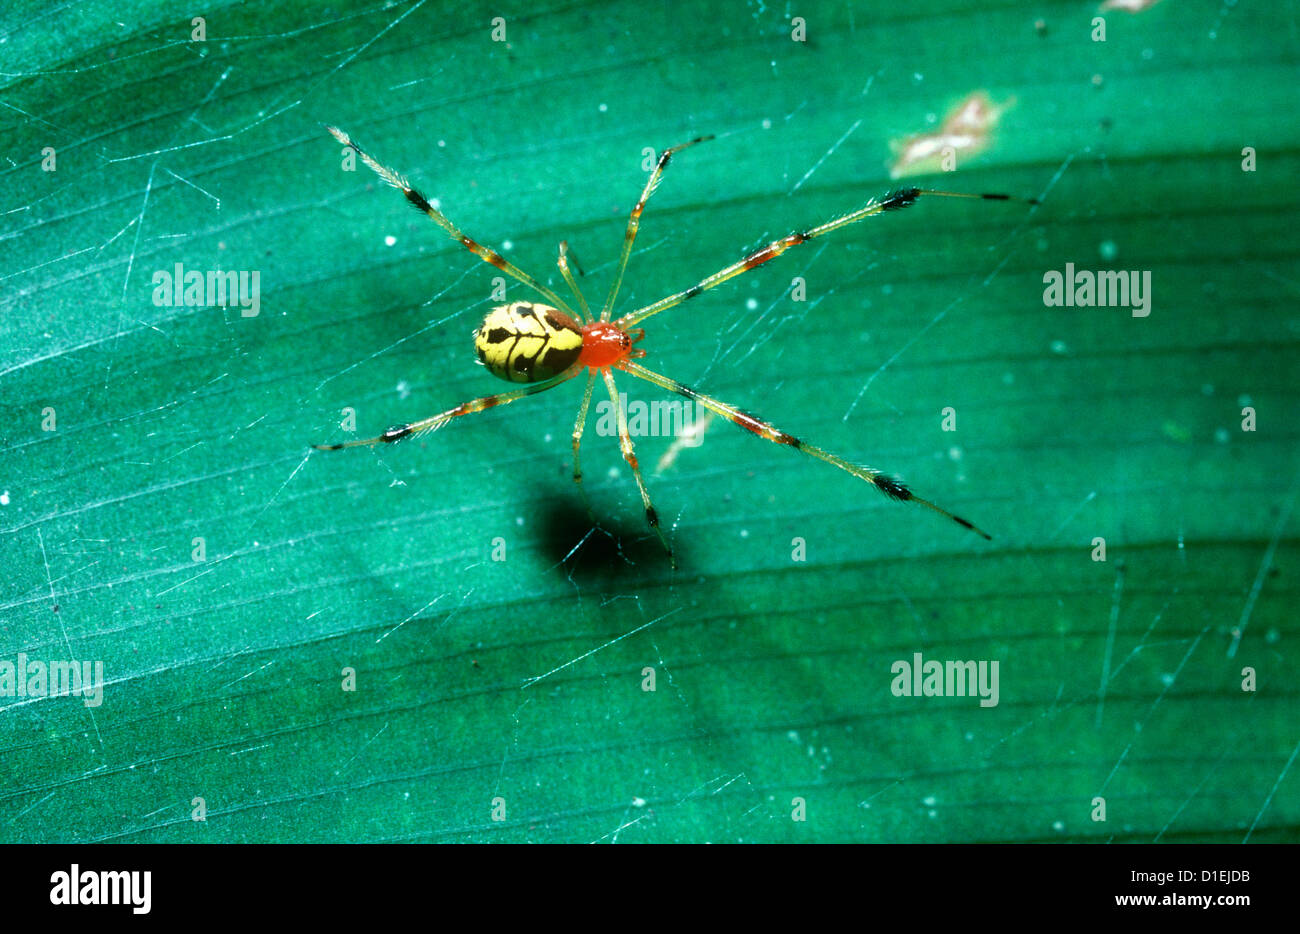 Comb-footed spider (Chrysso vesiculosa / jianglensis: Theridiidae) in rainforest, Thailand - Stock Image